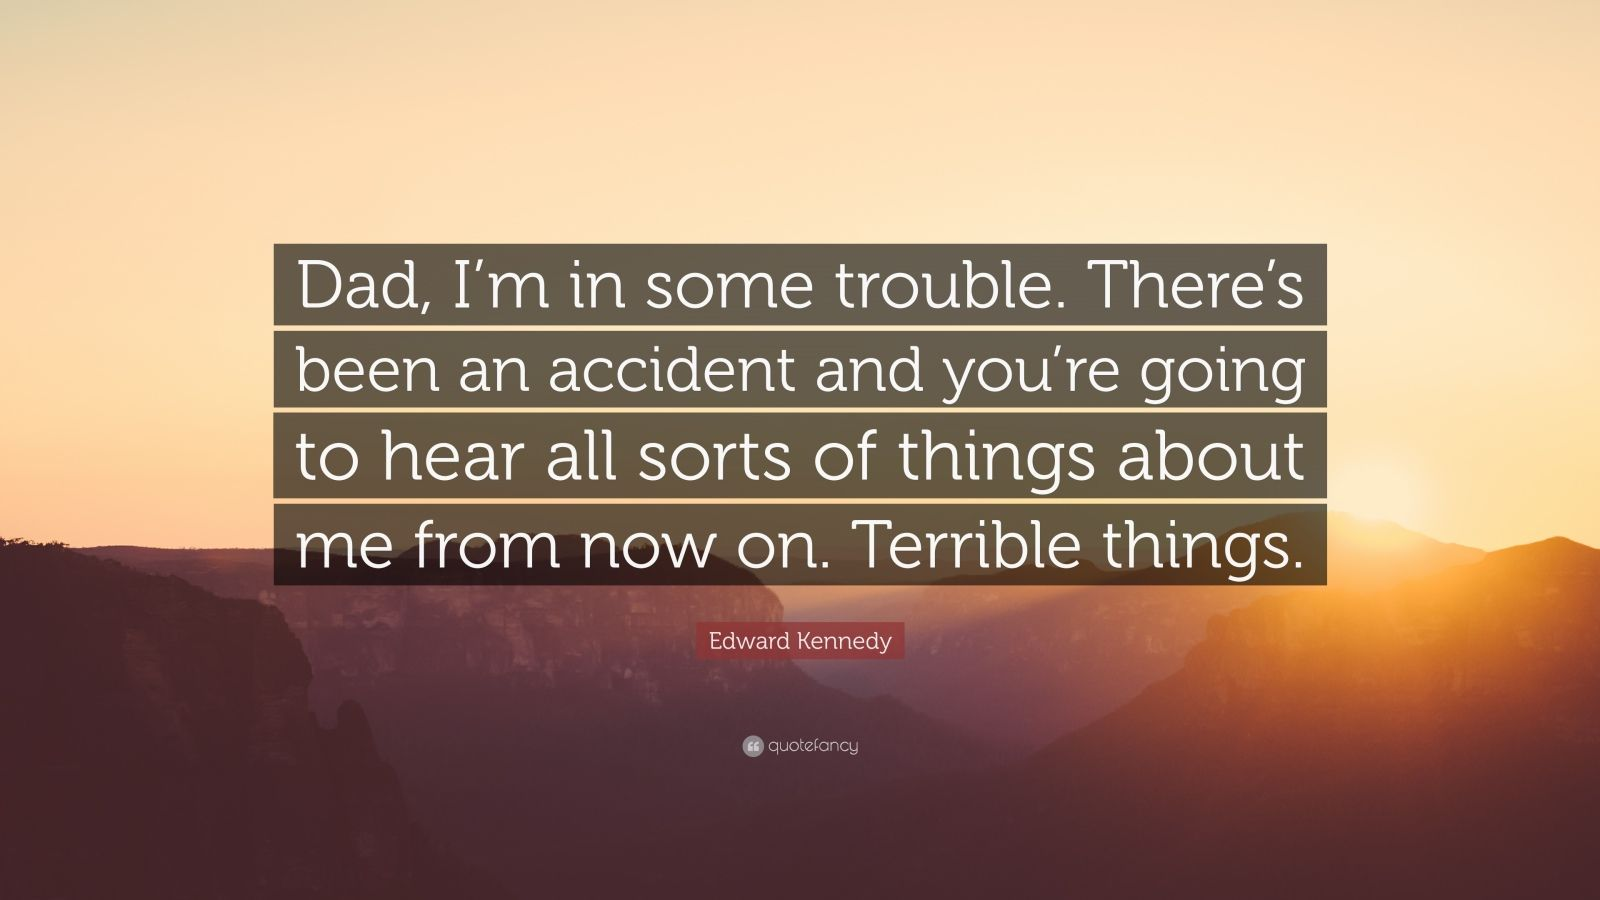 """Edward Kennedy Quote: """"Dad, I'm in some trouble. There's been an accident and you're going to hear all sorts of things about me from now on. Terrible things."""""""